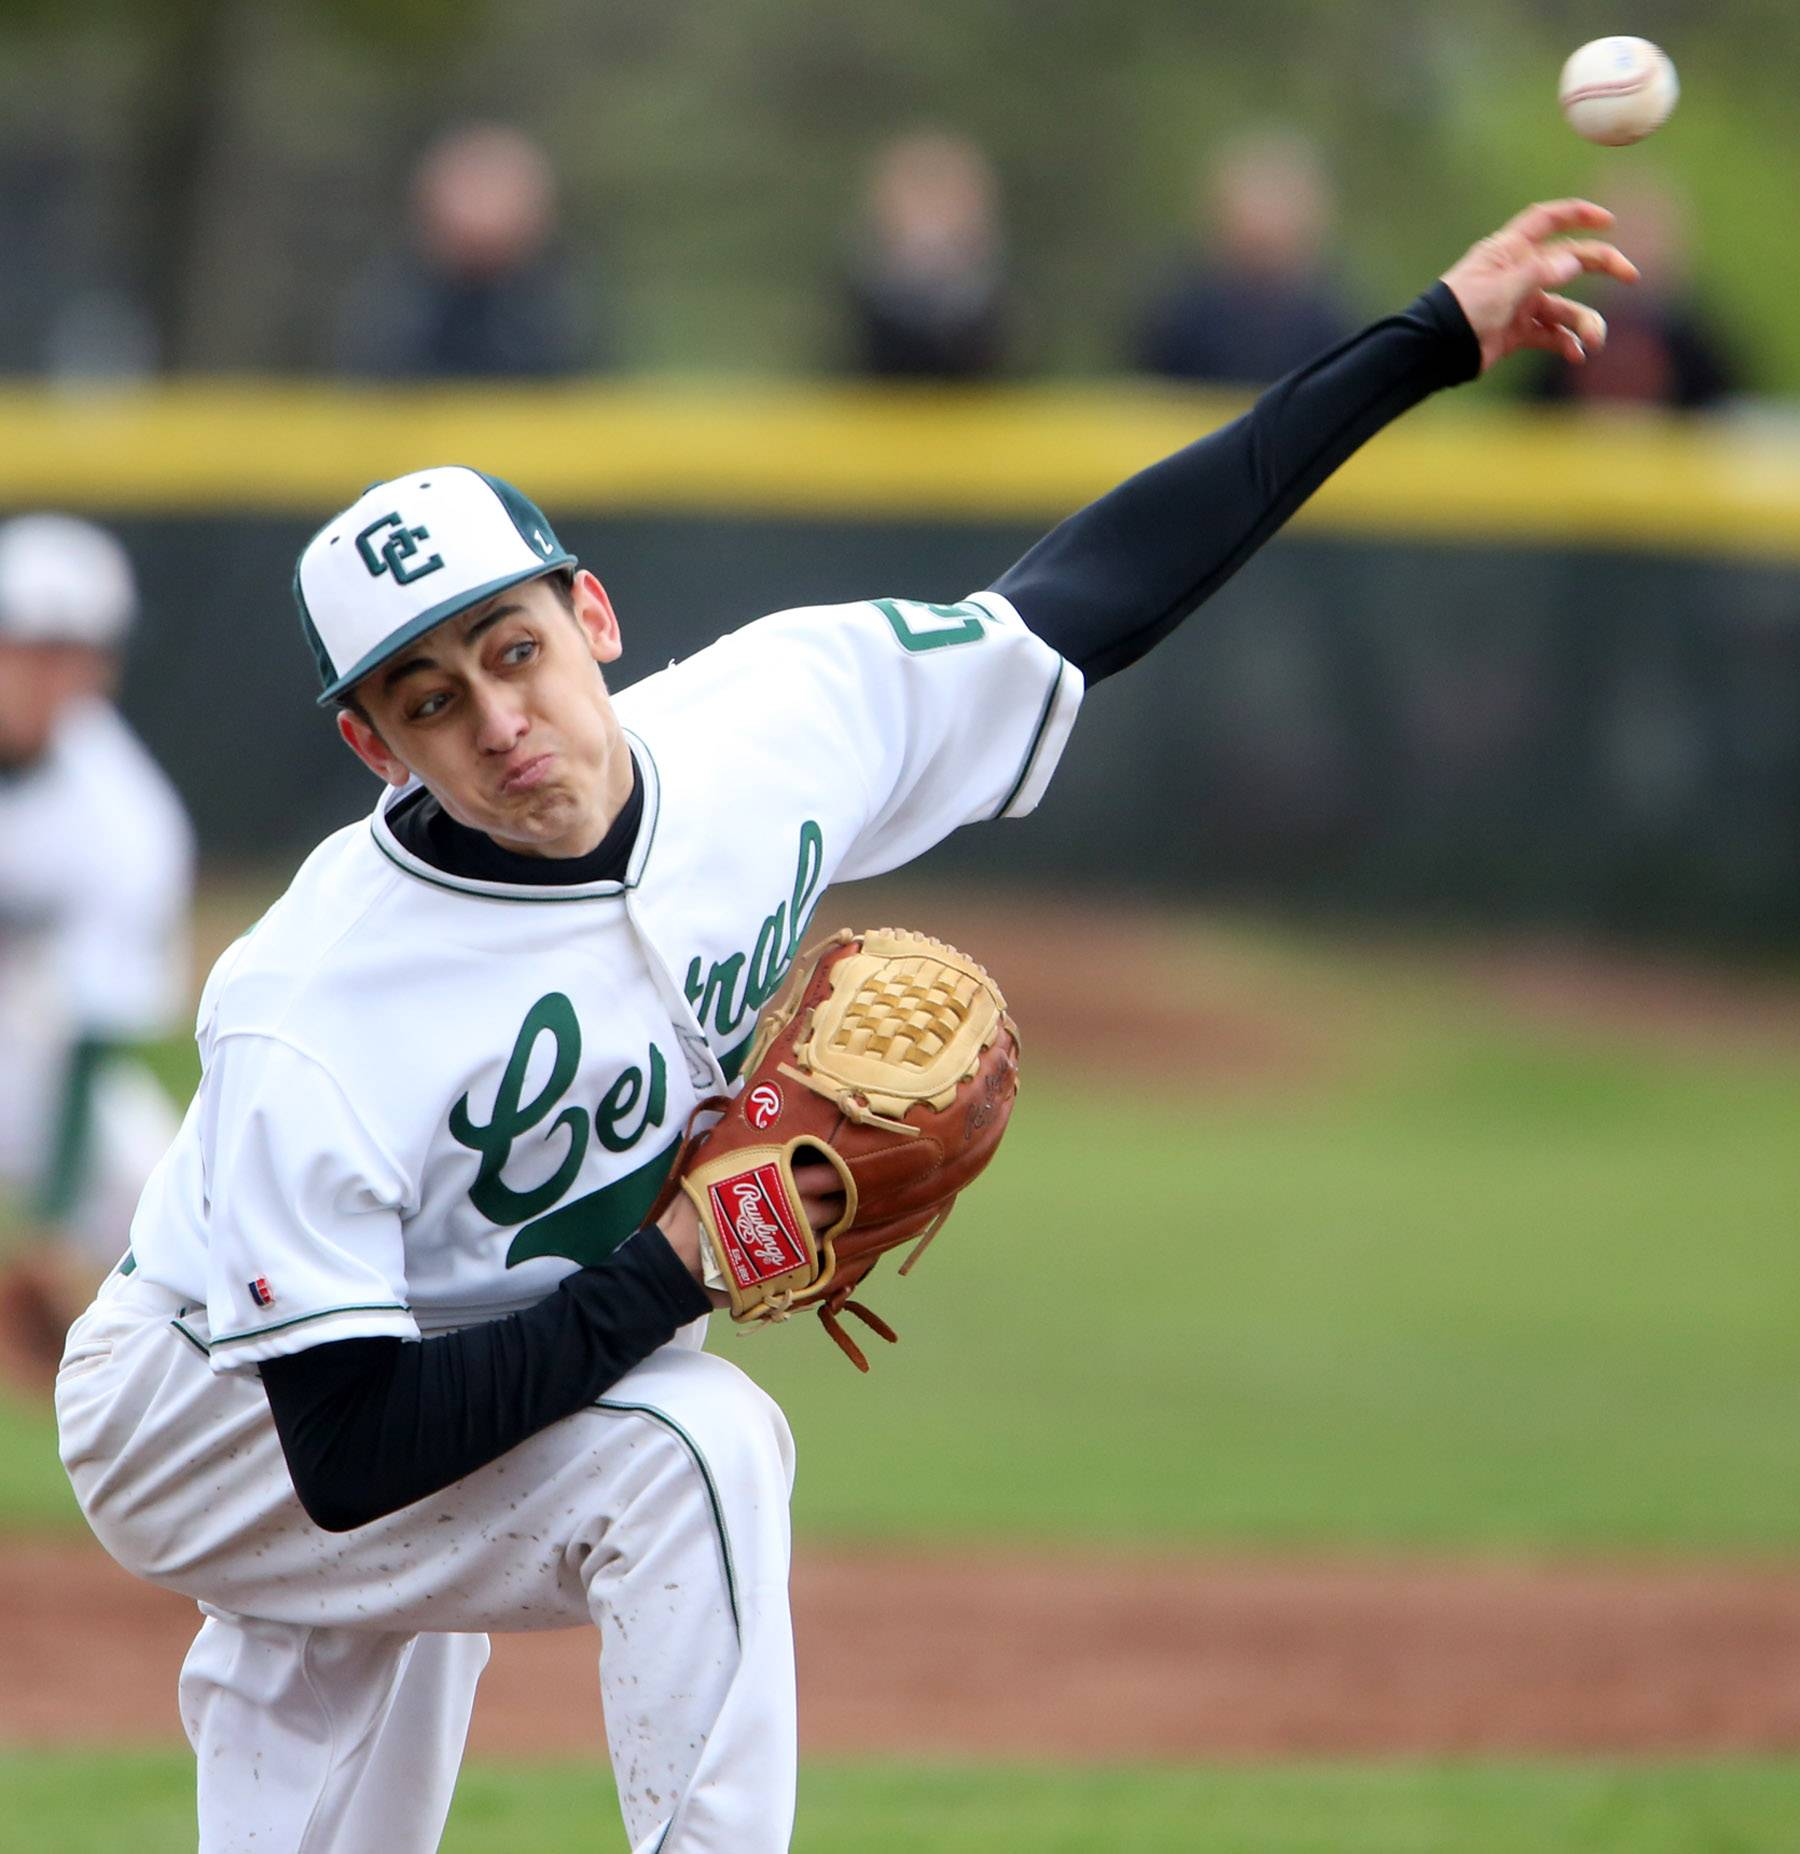 Grayslake Central pitcher Justin Guryn throws against Grayslake North on Friday at Grayslake Central.